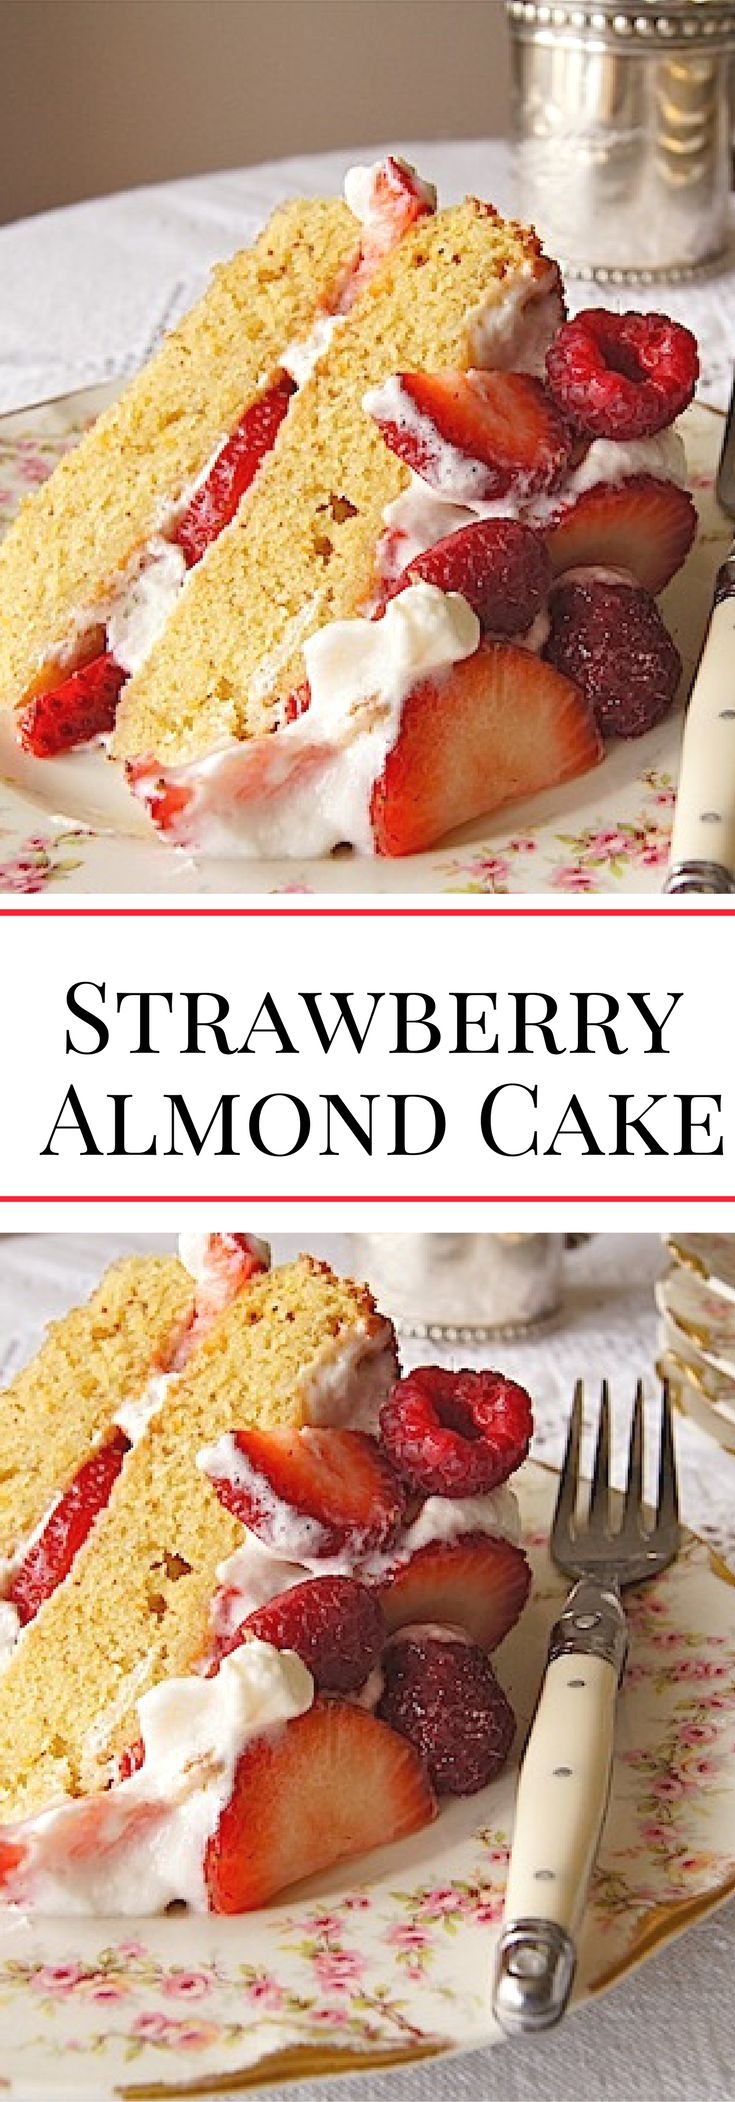 Strawberry Almond Orange Cake. A perfect dessert for spring parties, Easter, and Mother's Day.